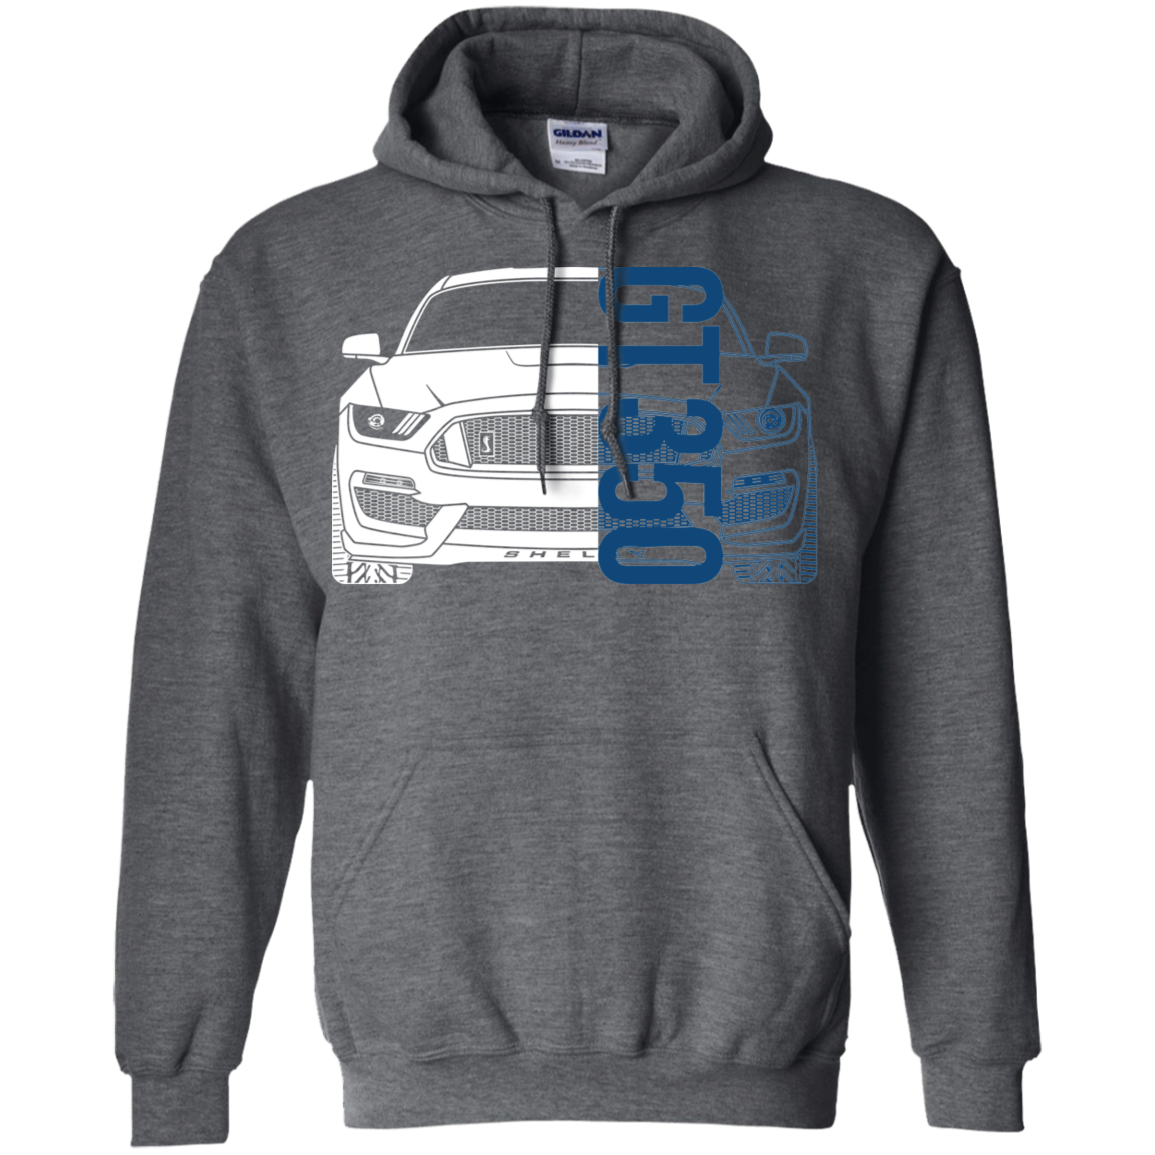 S550 GT350 Ford Mustang Pullover Hoodie - Wheel Spin Addict 607358baad